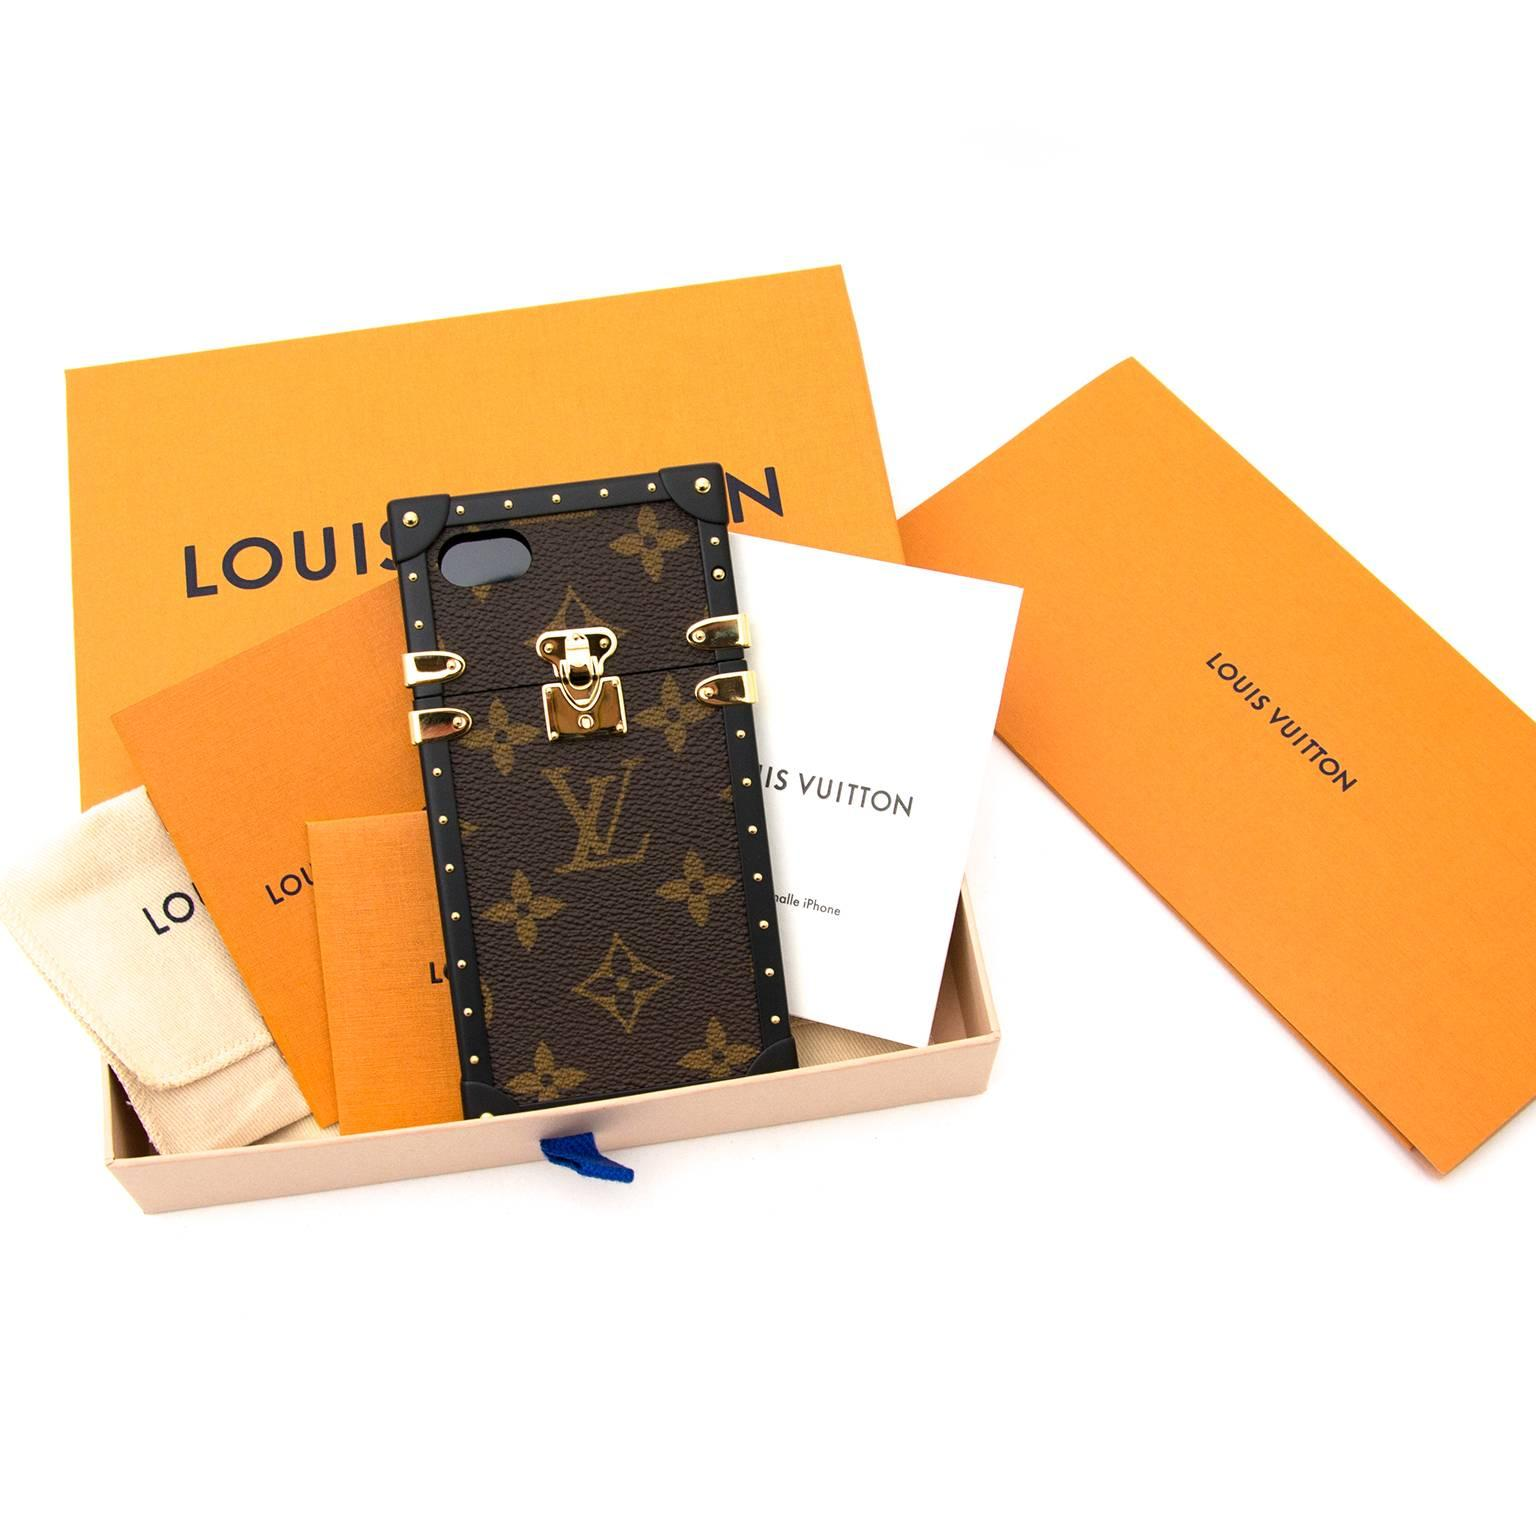 timeless design 6e942 affaf Brand New Very RARE Louis Vuitton Petite Malle-Inspired iPhone 7 Case